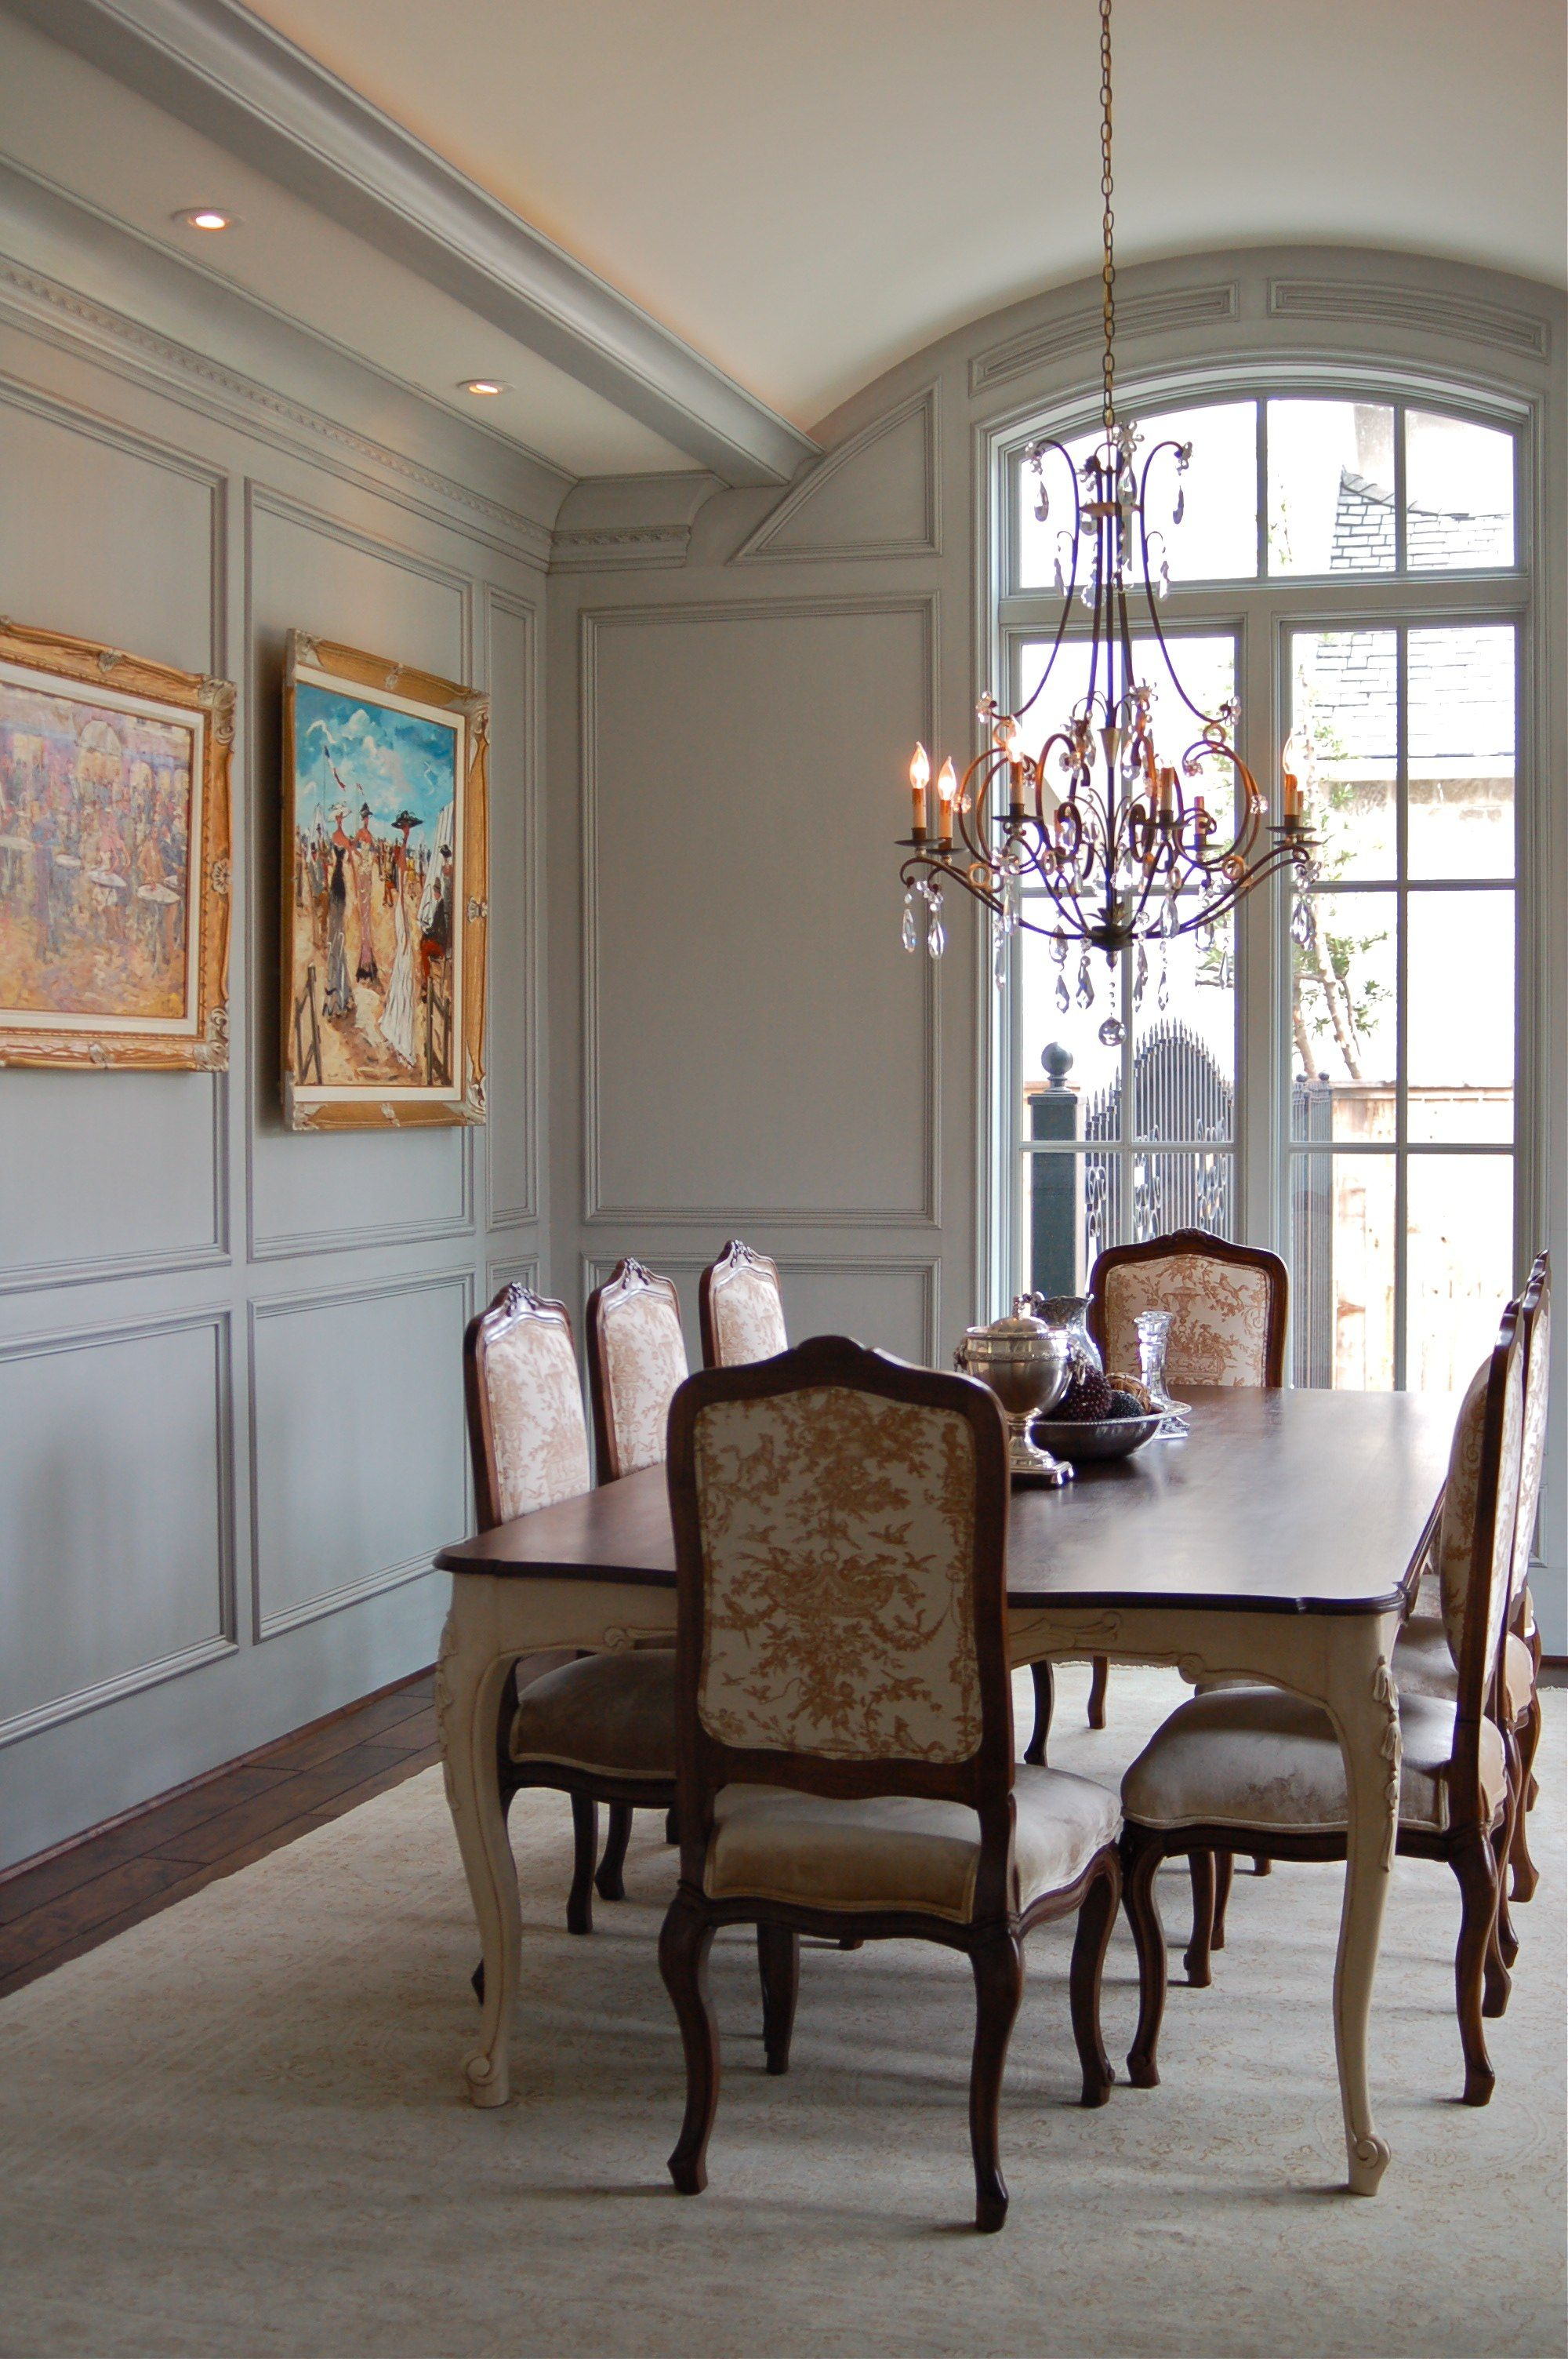 Painted Wood Paneling Amitha Verma Dining Room Wainscoting